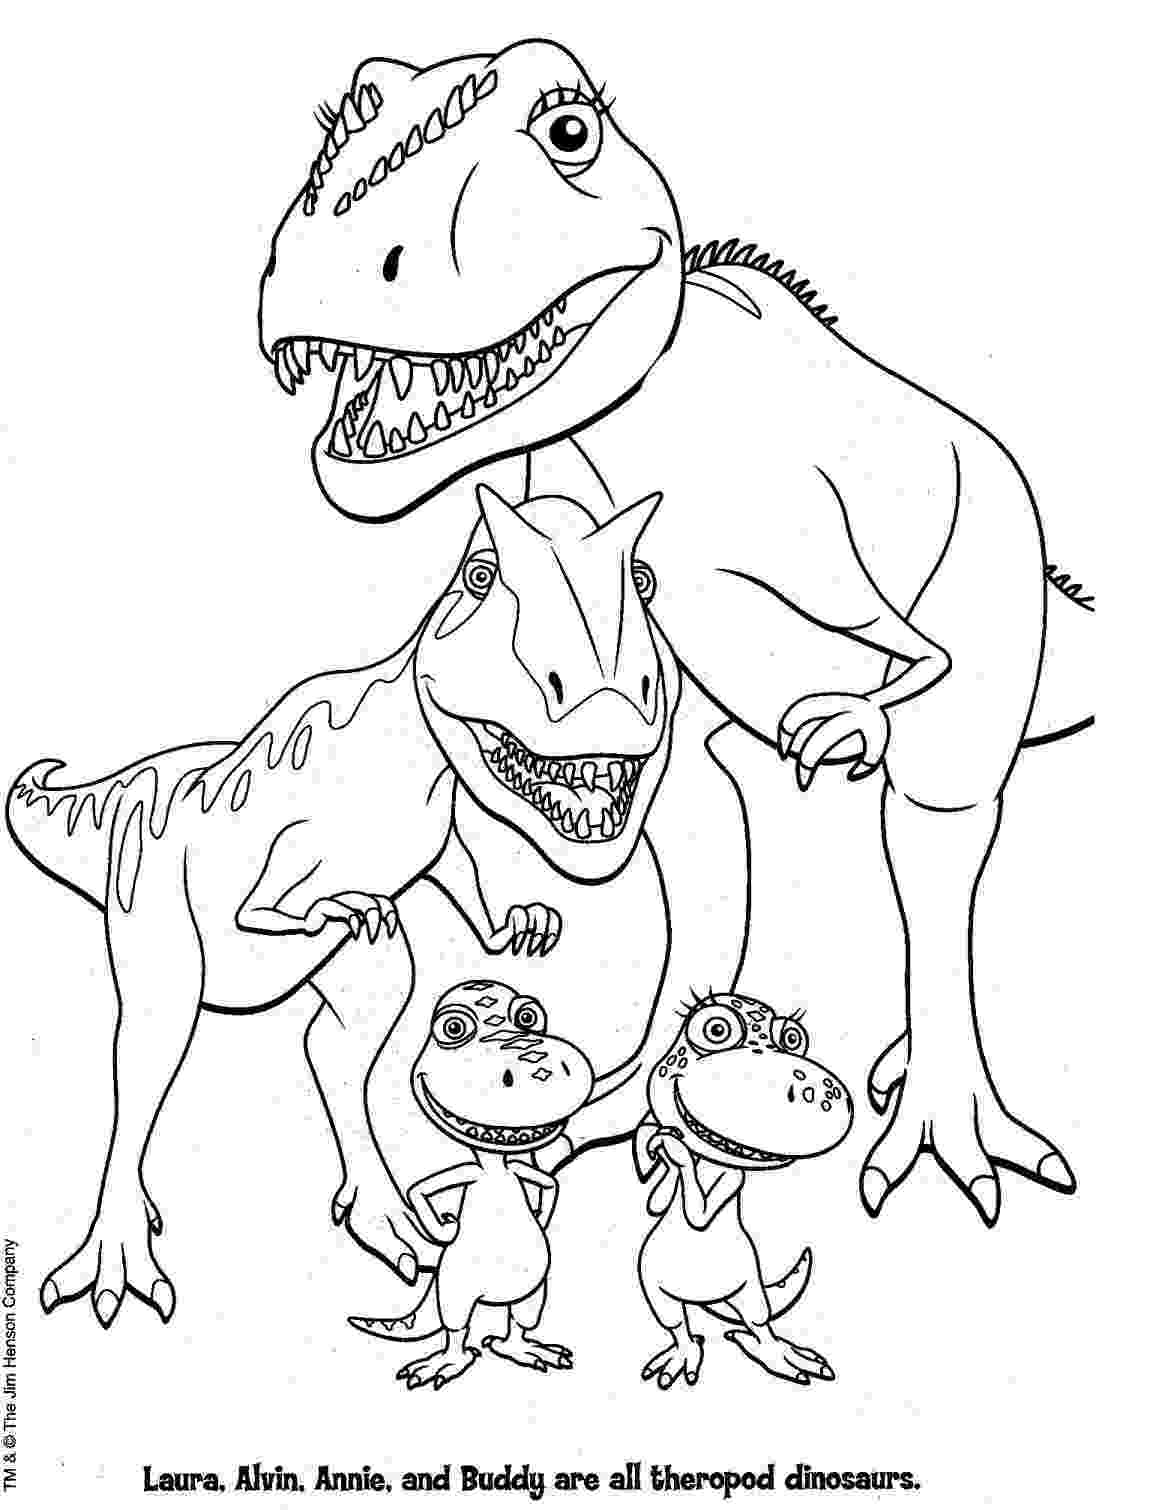 scary dinosaur coloring pages dinosaurs coloring pages collection free coloring sheets pages dinosaur scary coloring